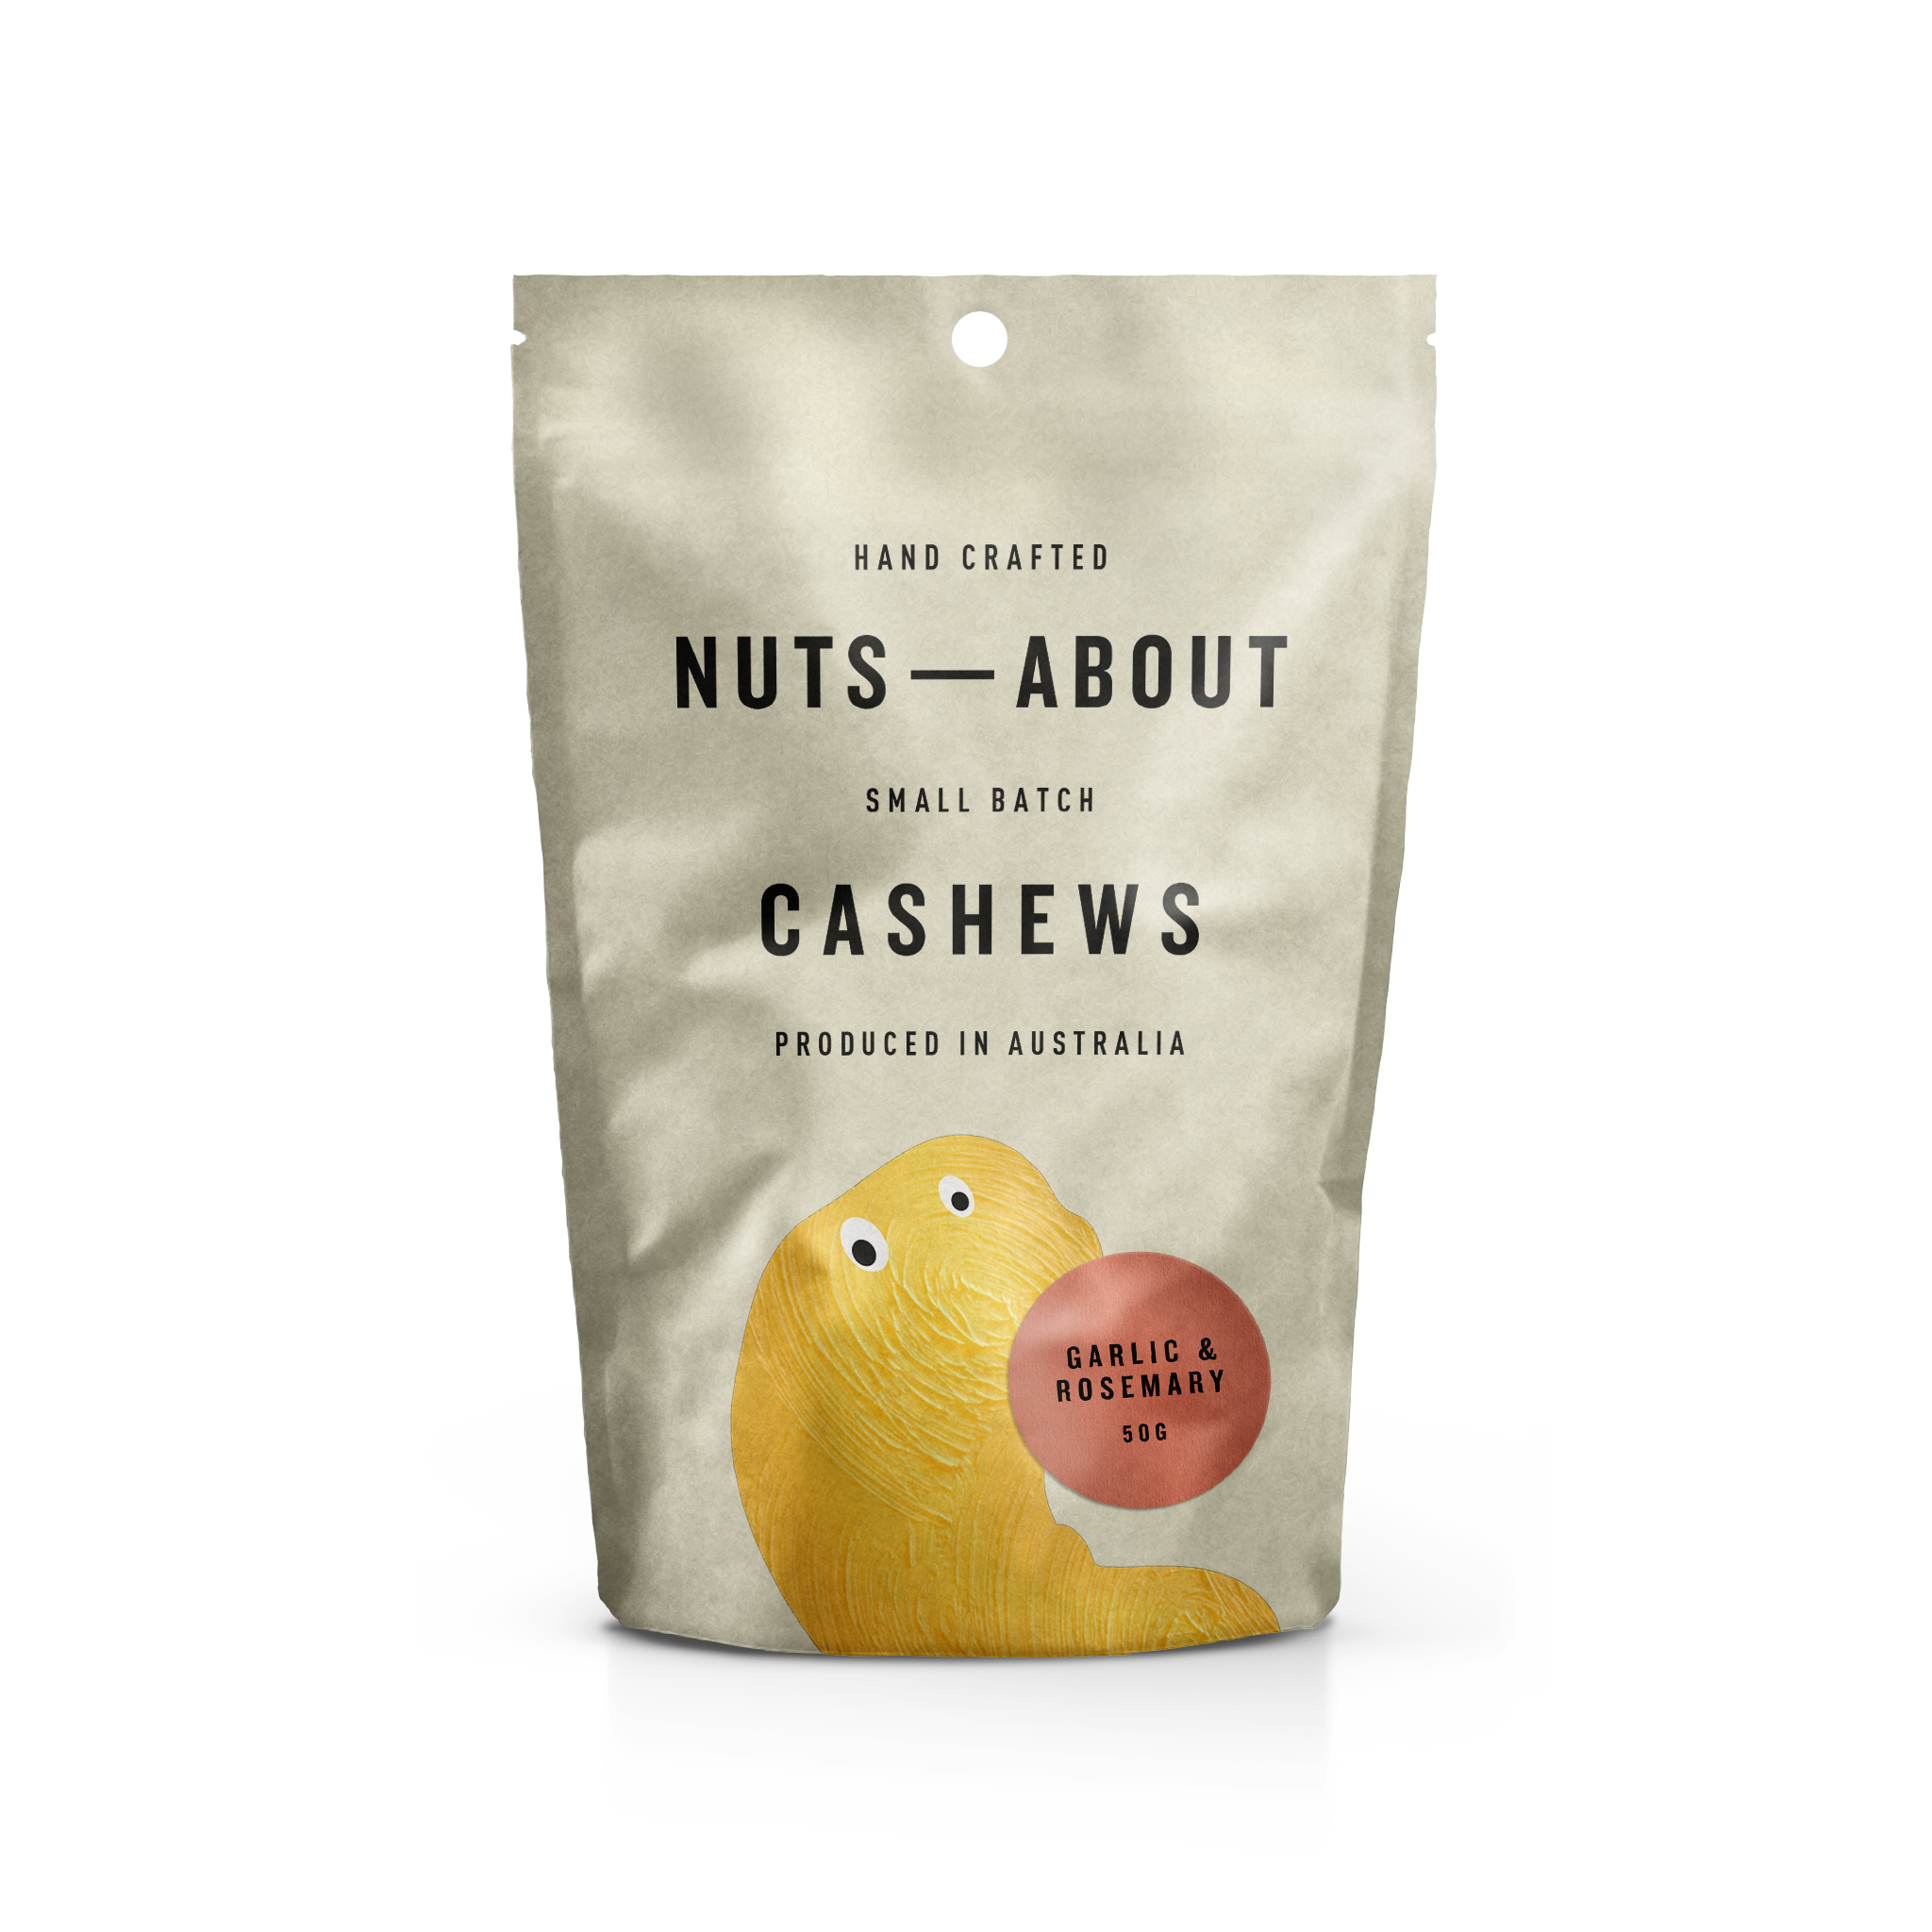 Cashews - Garlic & Rosemary - 50G x 48 Bags